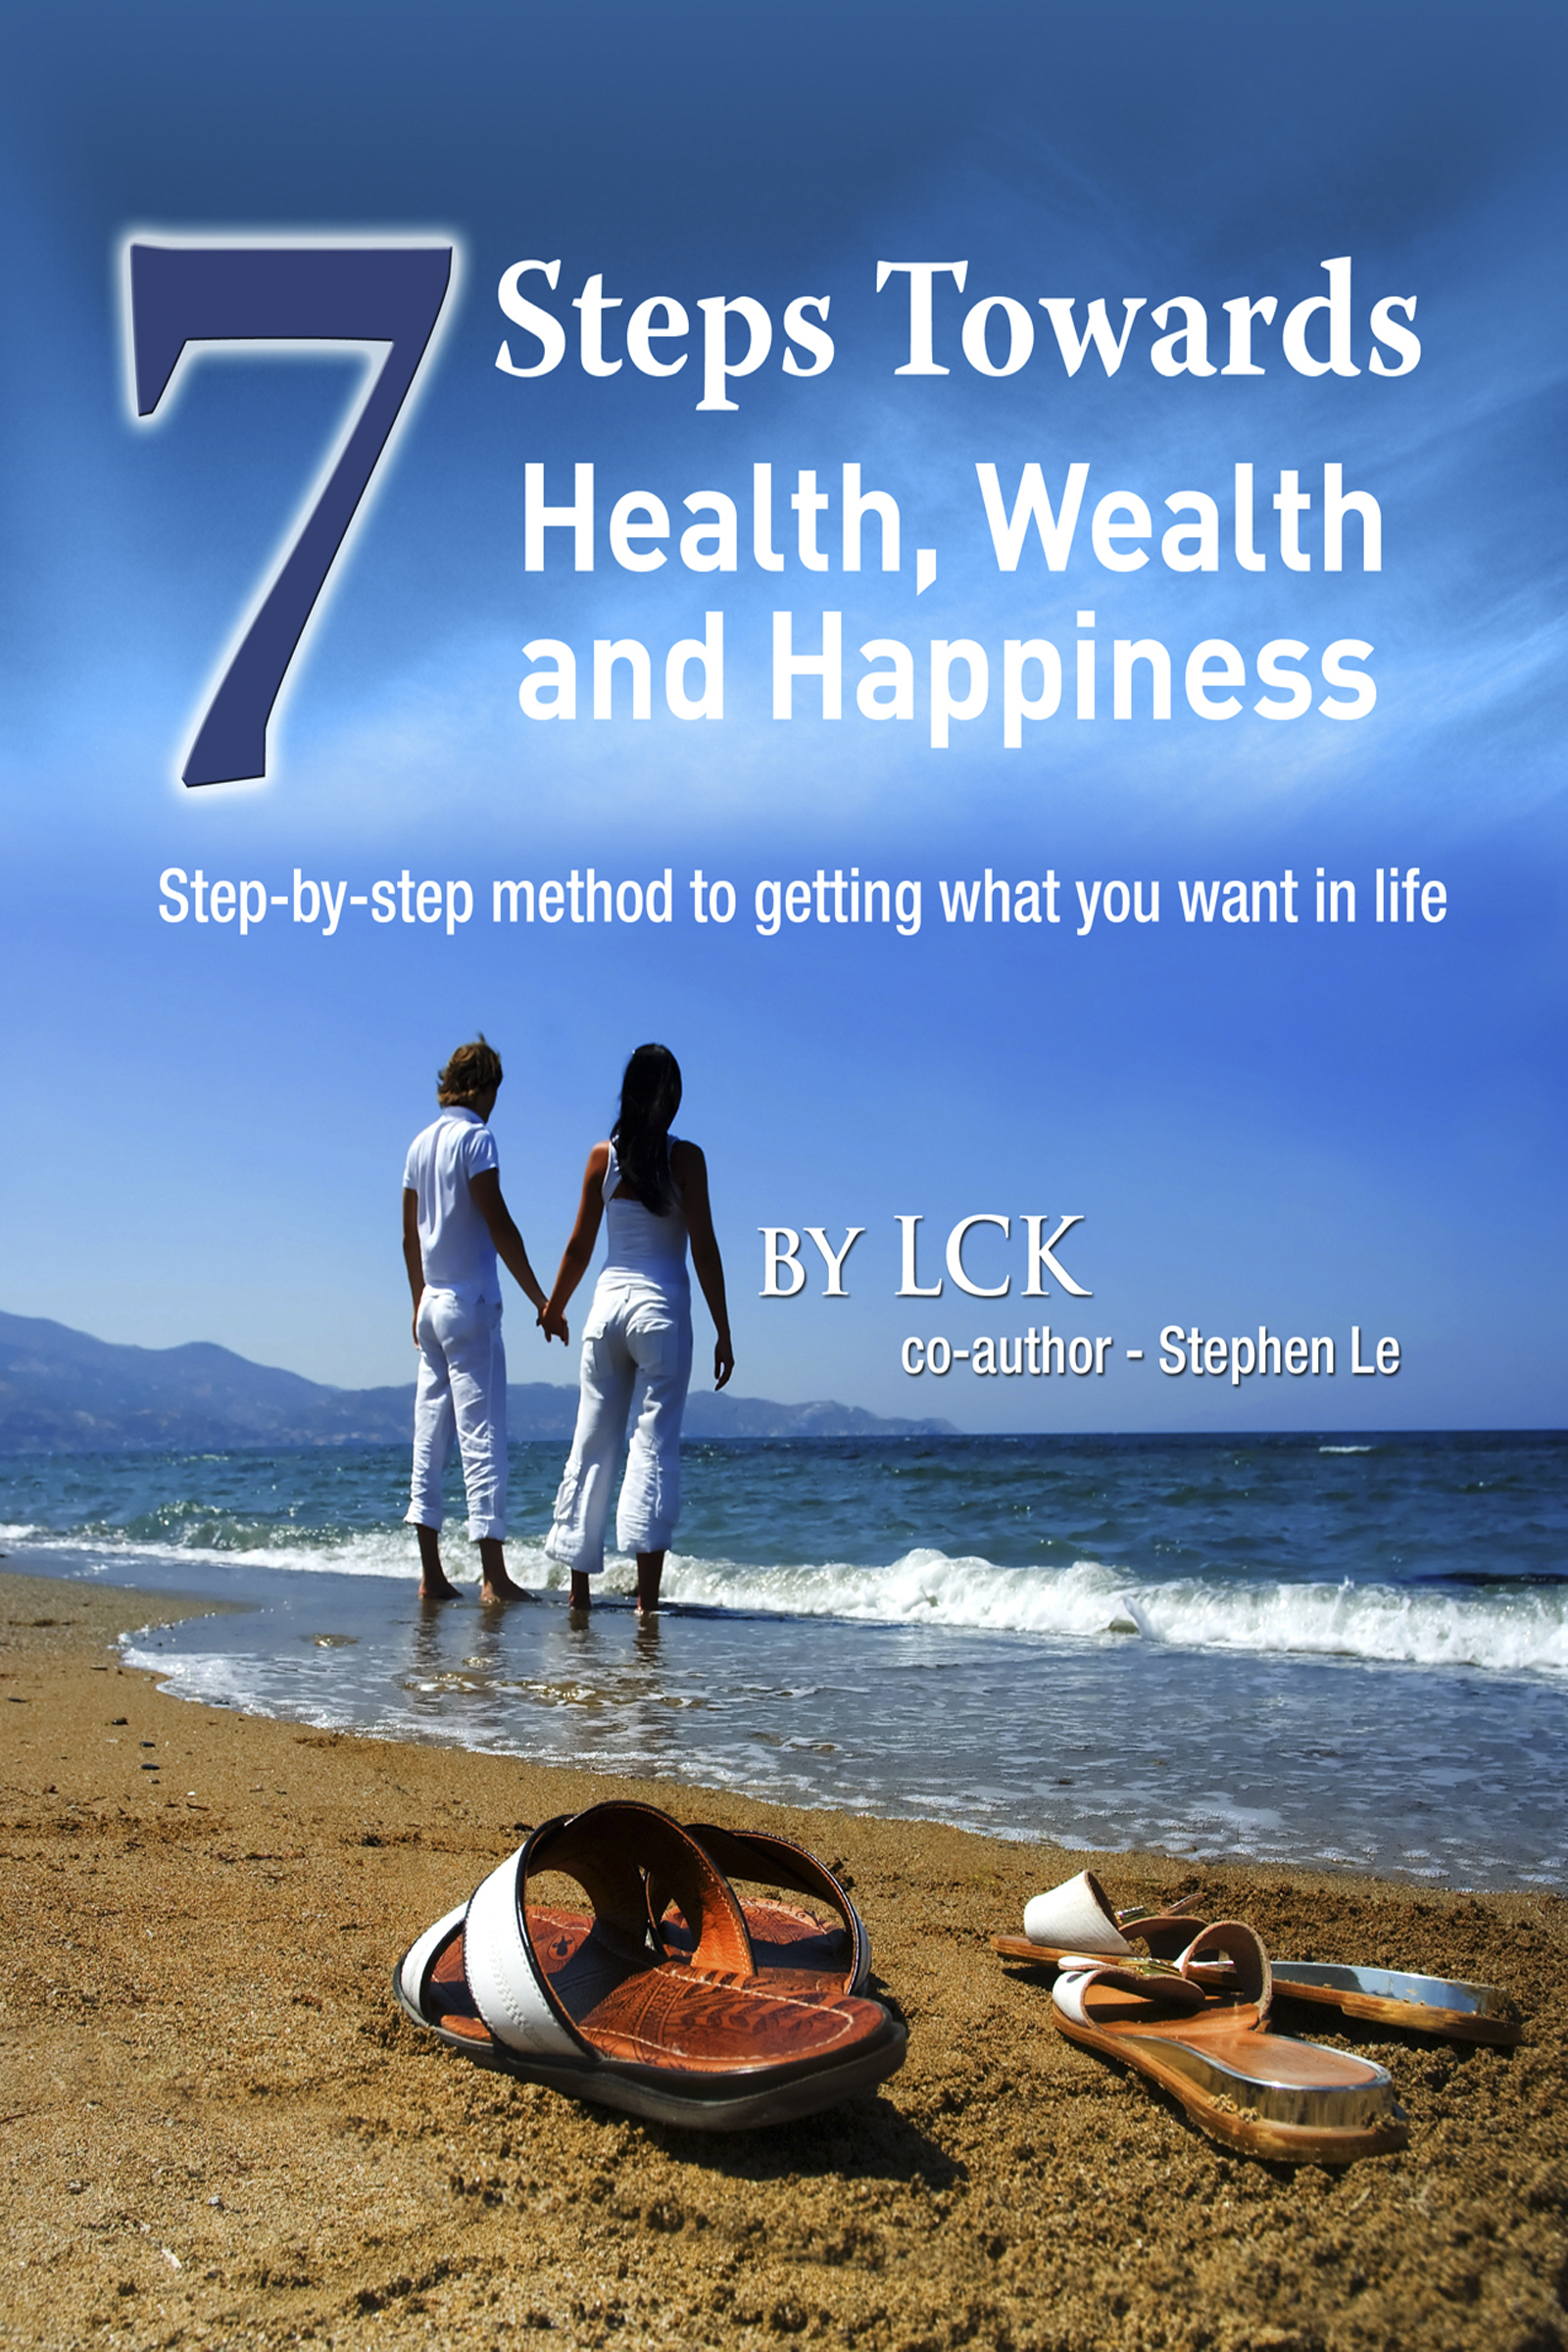 7 Steps Toward Health, Wealth And Happiness LCK